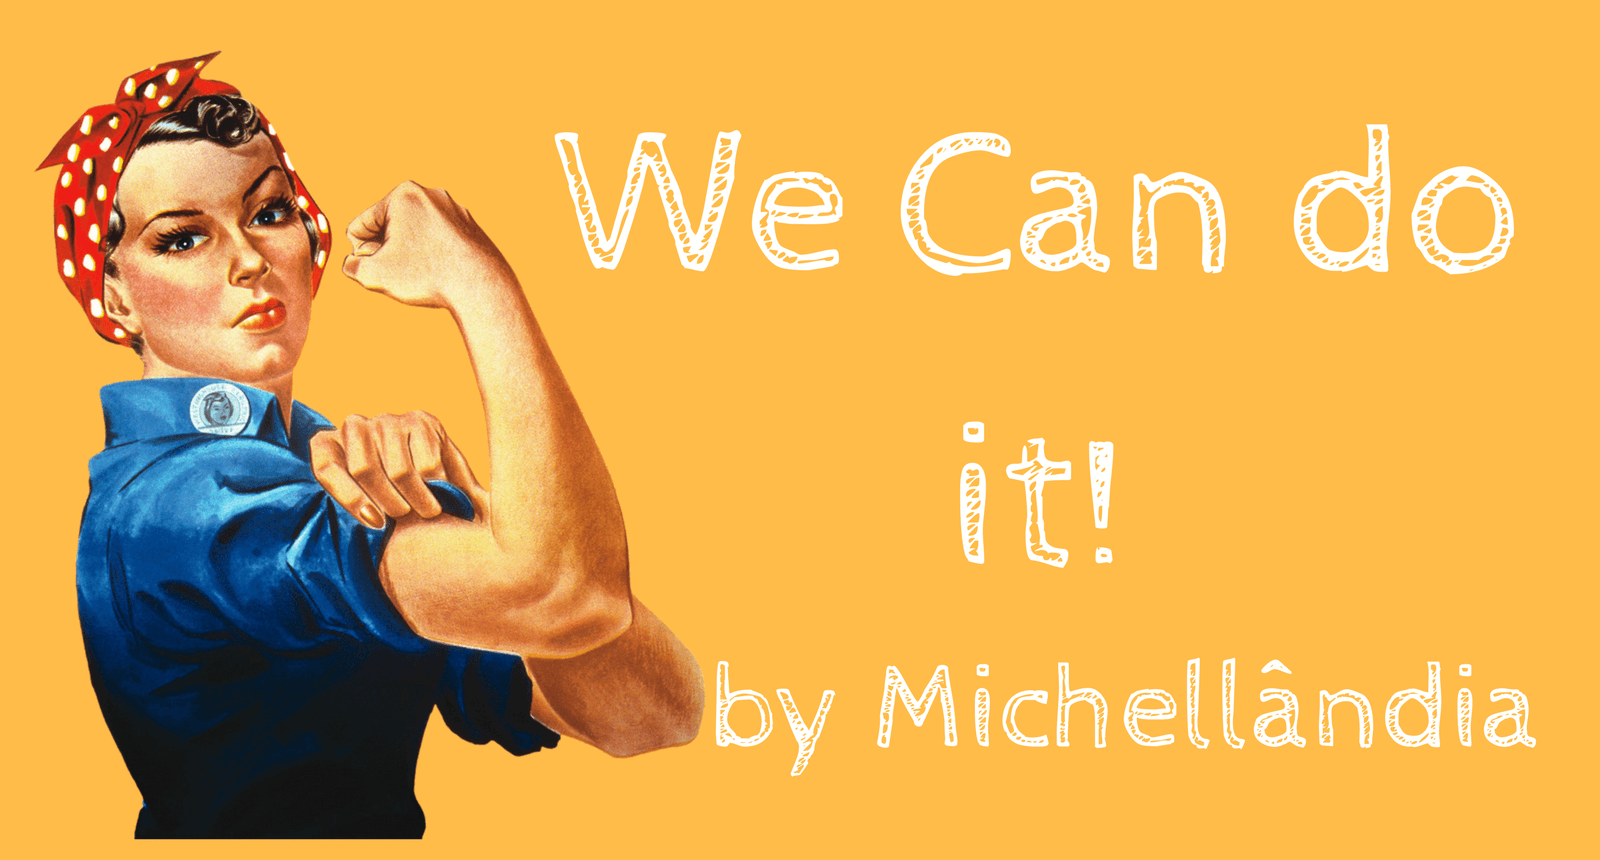 We can do it! By Mia Anzola